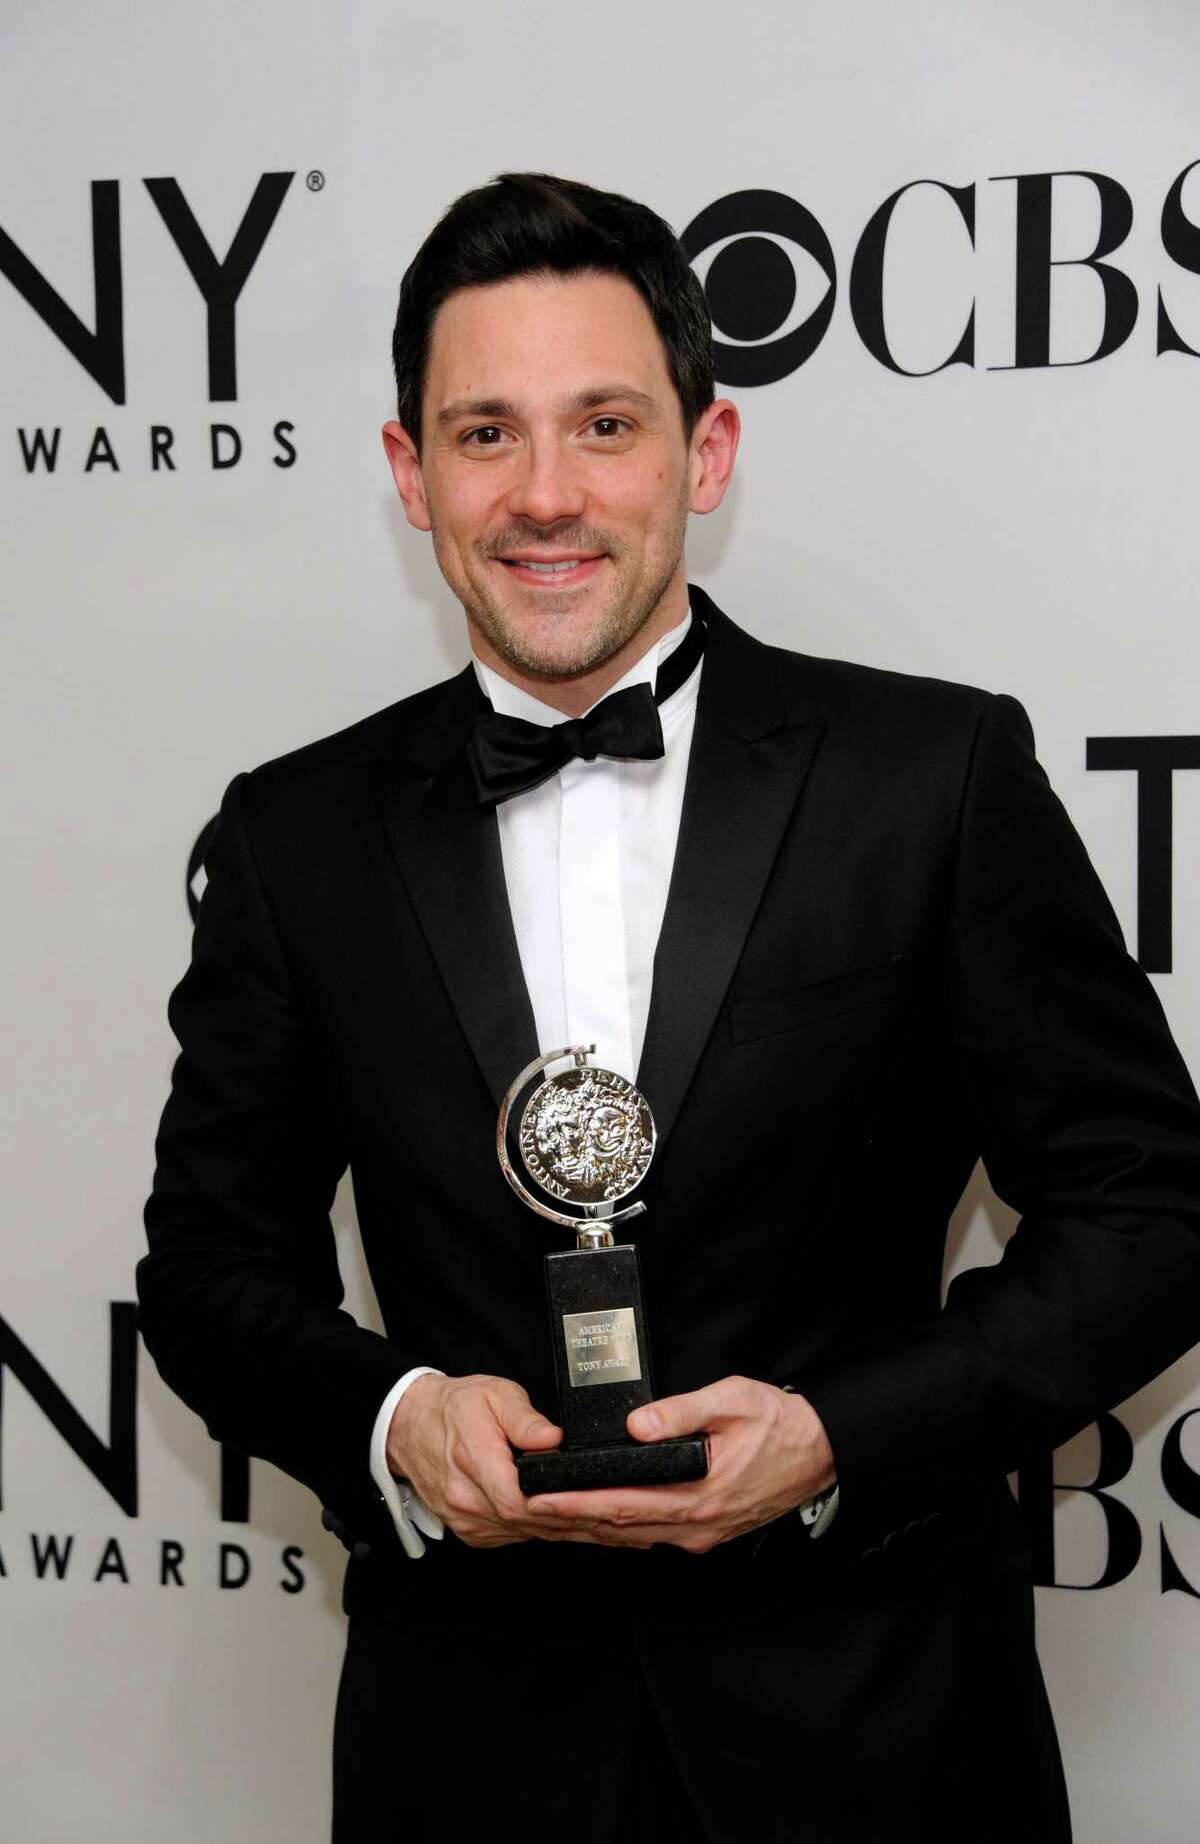 Steve Kazee poses backstage with his award at the 66th annual Tony Awards on Sunday June 10, 2012, in New York. (Photo by Evan Agostini /Invision/AP)